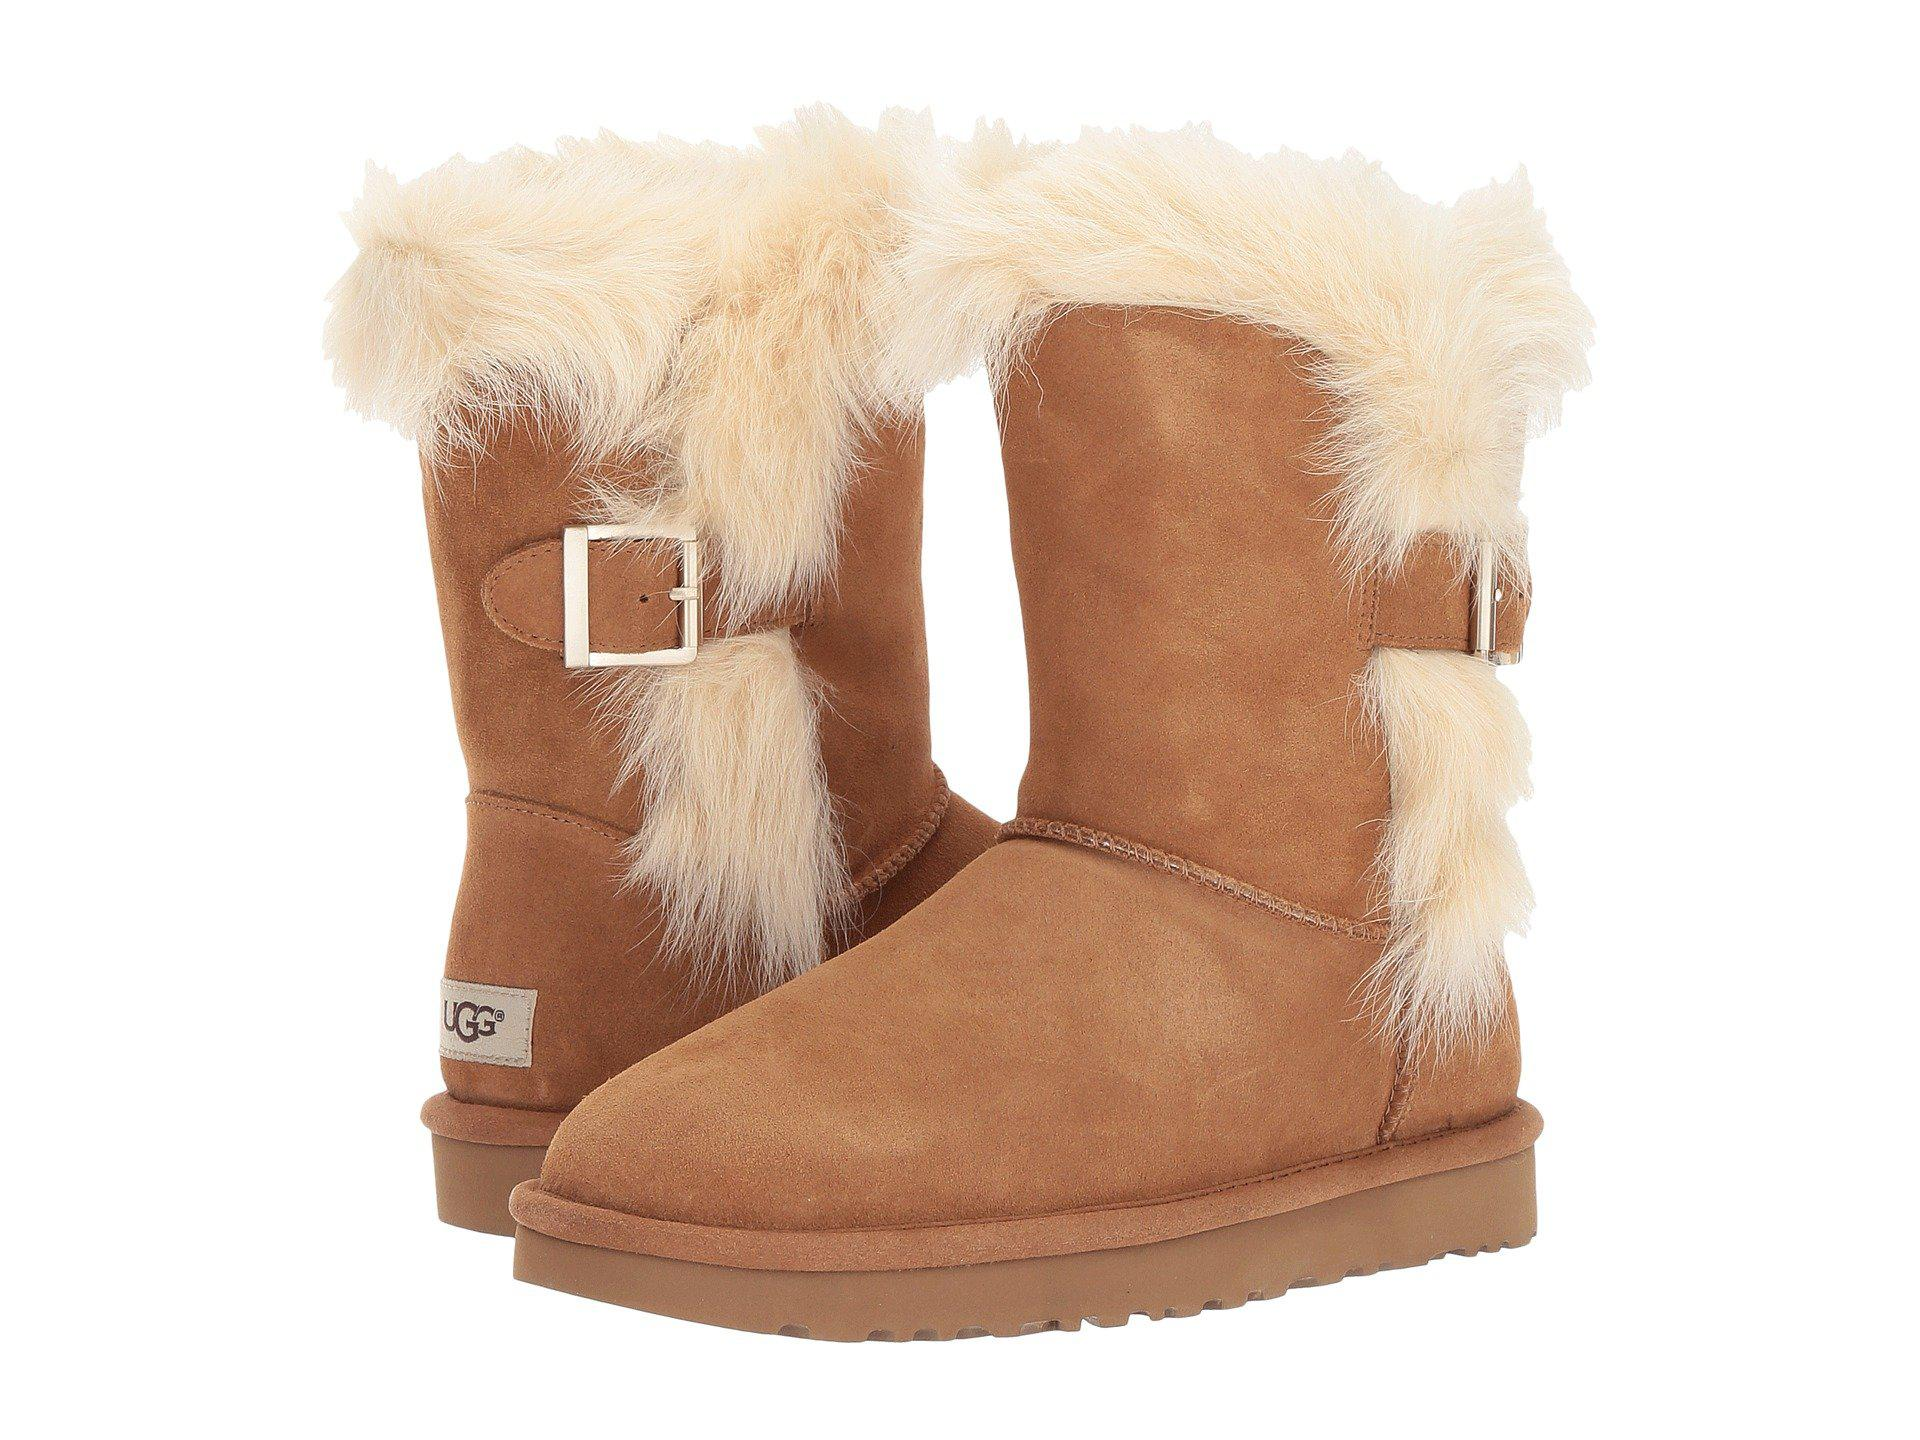 181a531f96b Lyst - UGG Deena (chestnut) Women's Cold Weather Boots in Brown